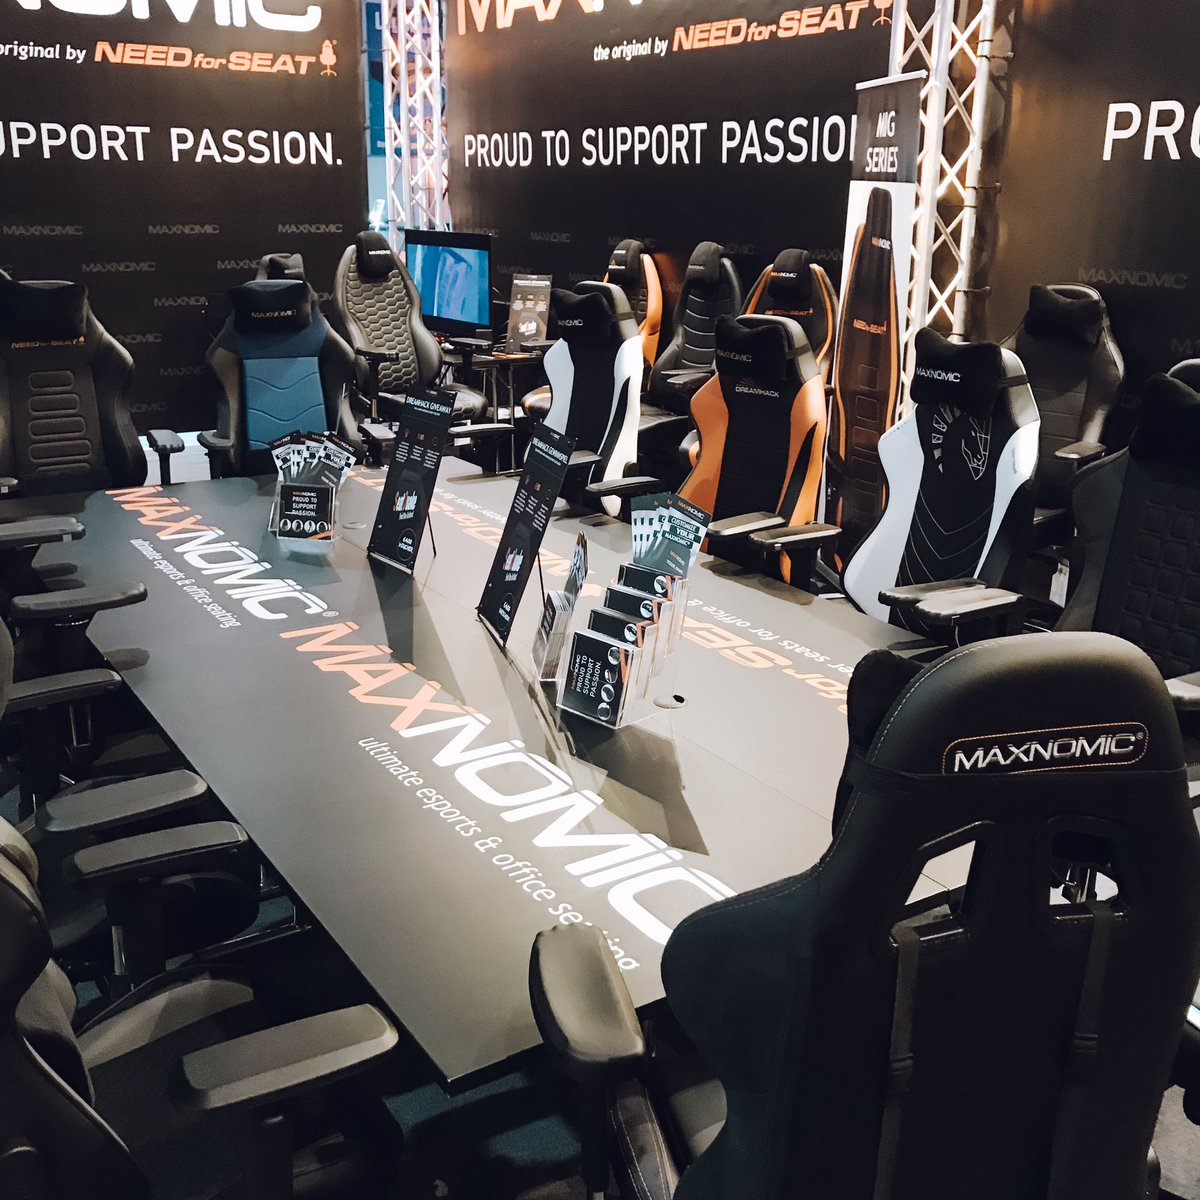 Maxnomic Gutschein Media Tweets By Needforseat Deutschland Needforseat De Twitter